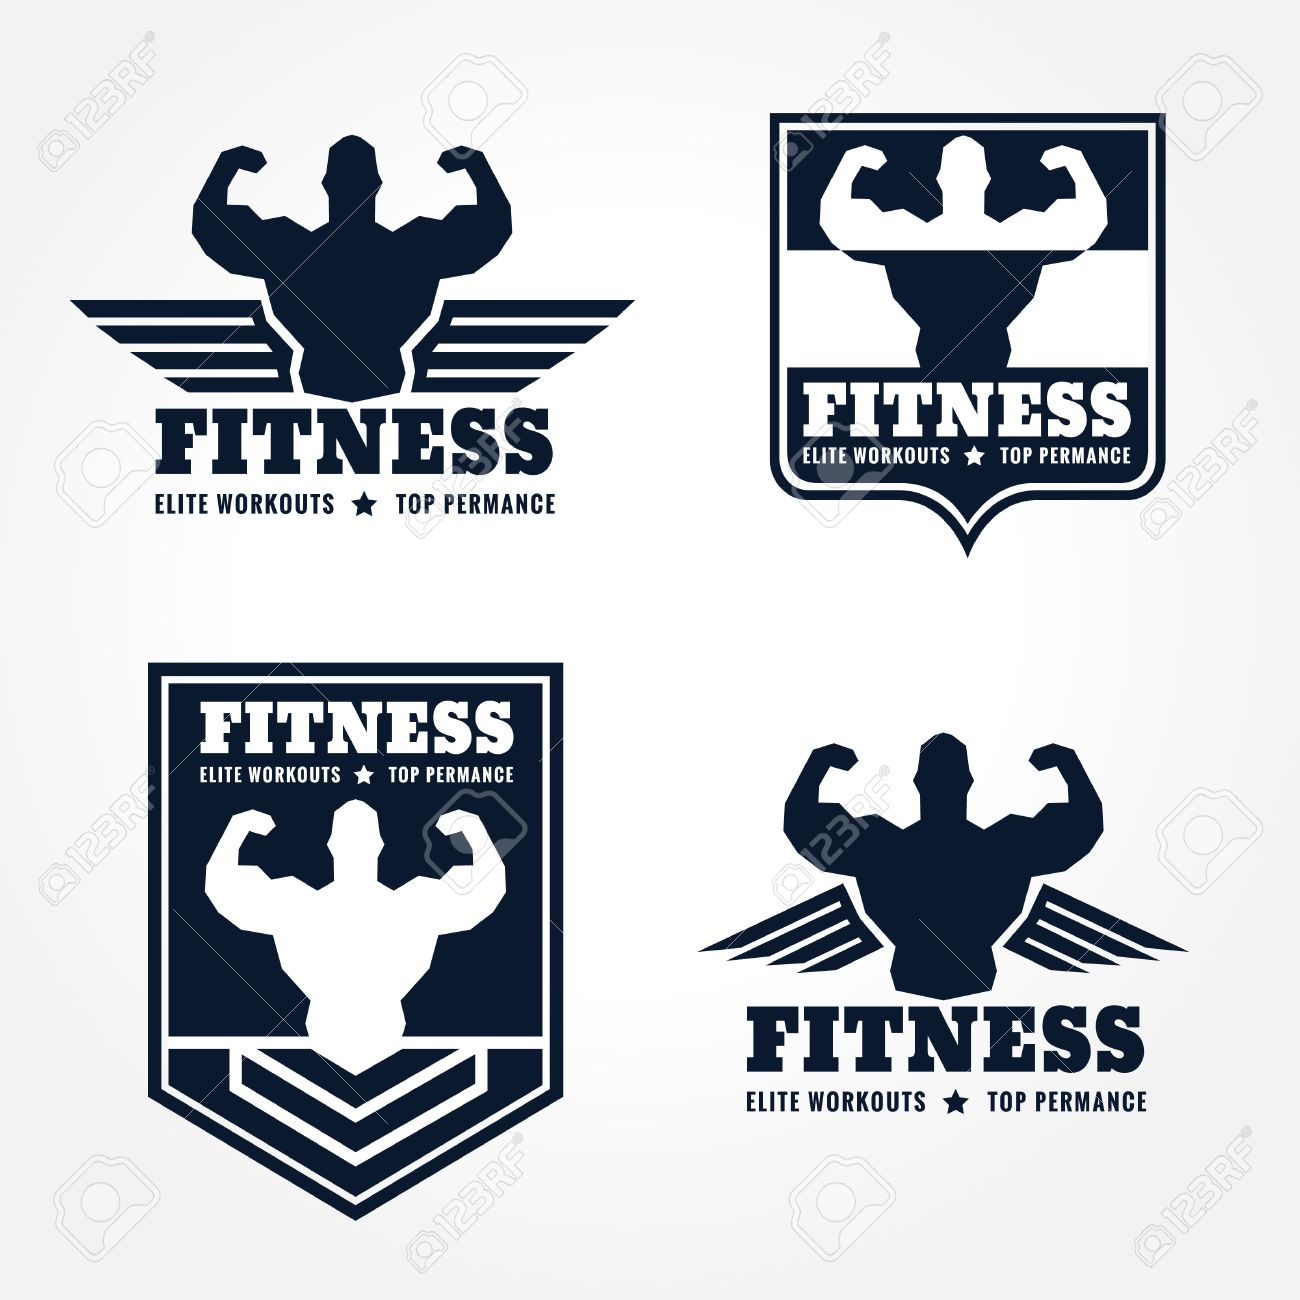 Fitness Logo Emblems In Retro Style Graphic Design (wings And ... for Bodybuilding Graphic Design  299kxo